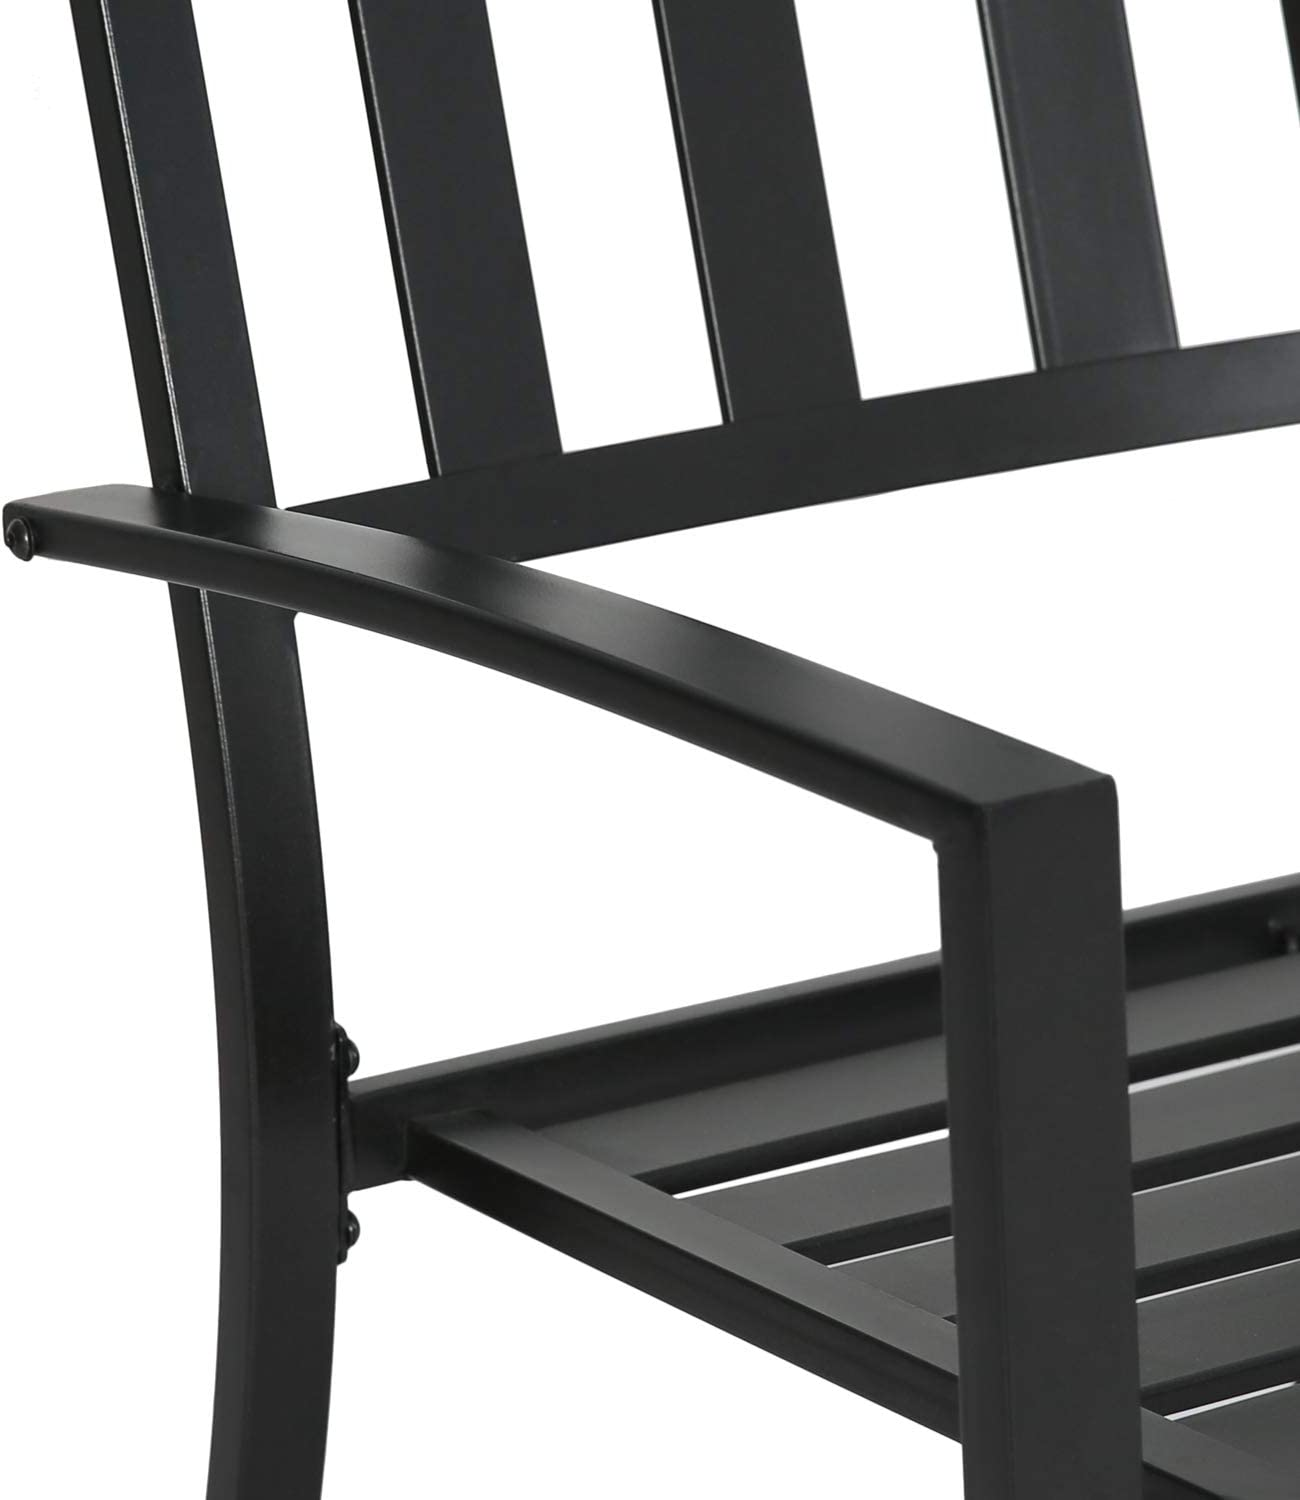 Iwicker Patio Steel Dining Arm Chairs Set of 4